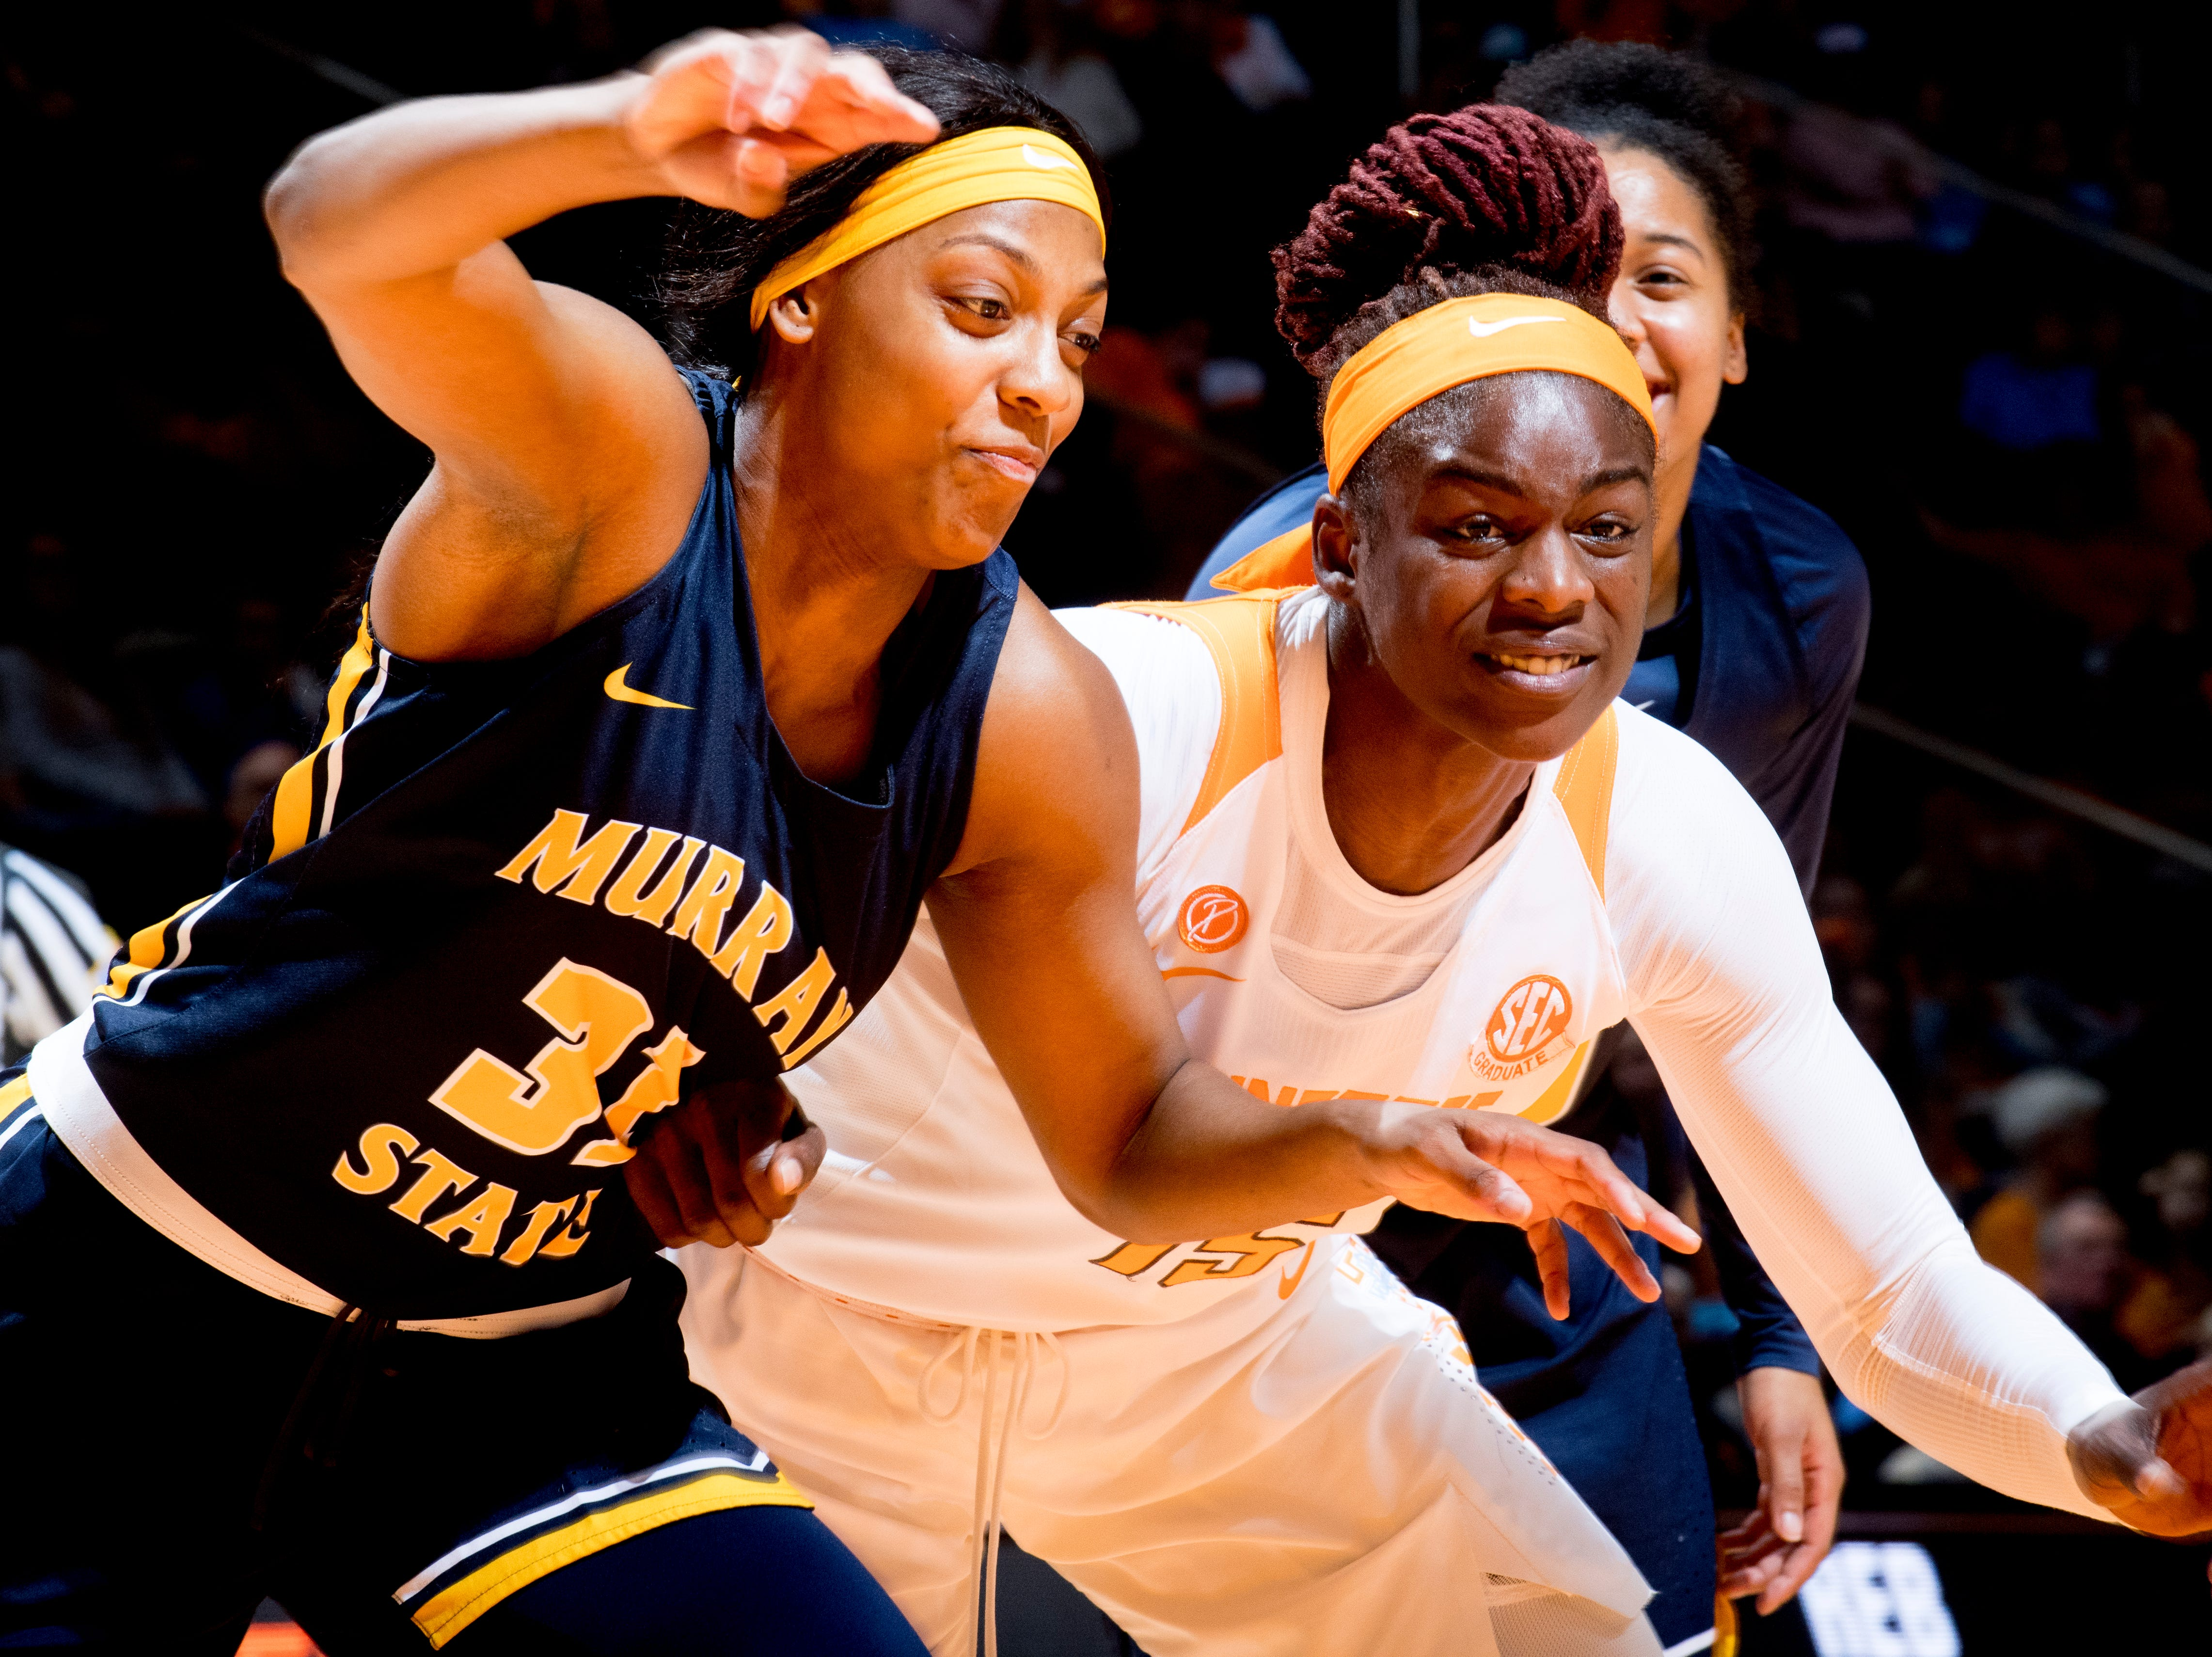 Tennessee forward Cheridene Green (15) and Murray State forward Brianna Crane (31) go for the rebound ball during a game between the Tennessee Lady Vols and Murray State at Thompson-Boling Arena in Knoxville, Tennessee on Friday, December 28, 2018.